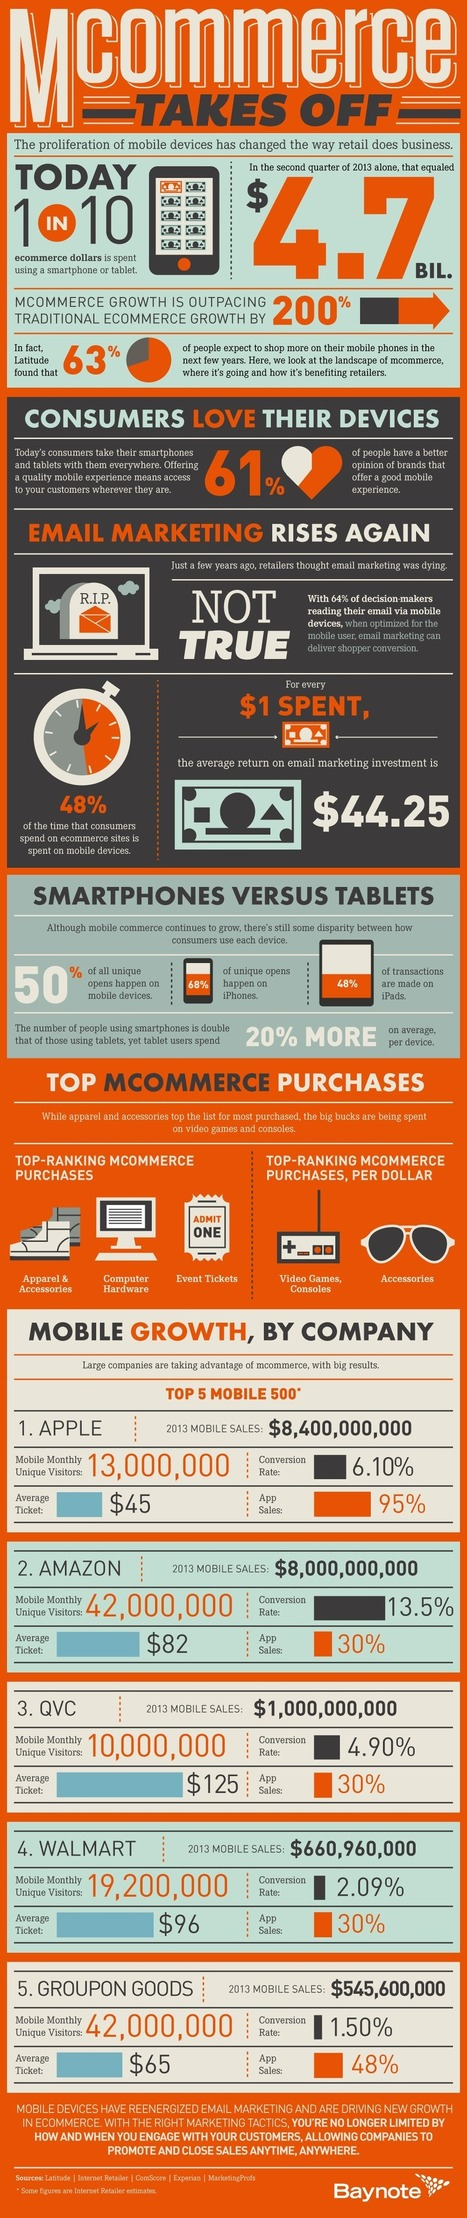 Infographic: MCommerce Growing 200% Faster than ECommerce | Prionomy | Scoop.it